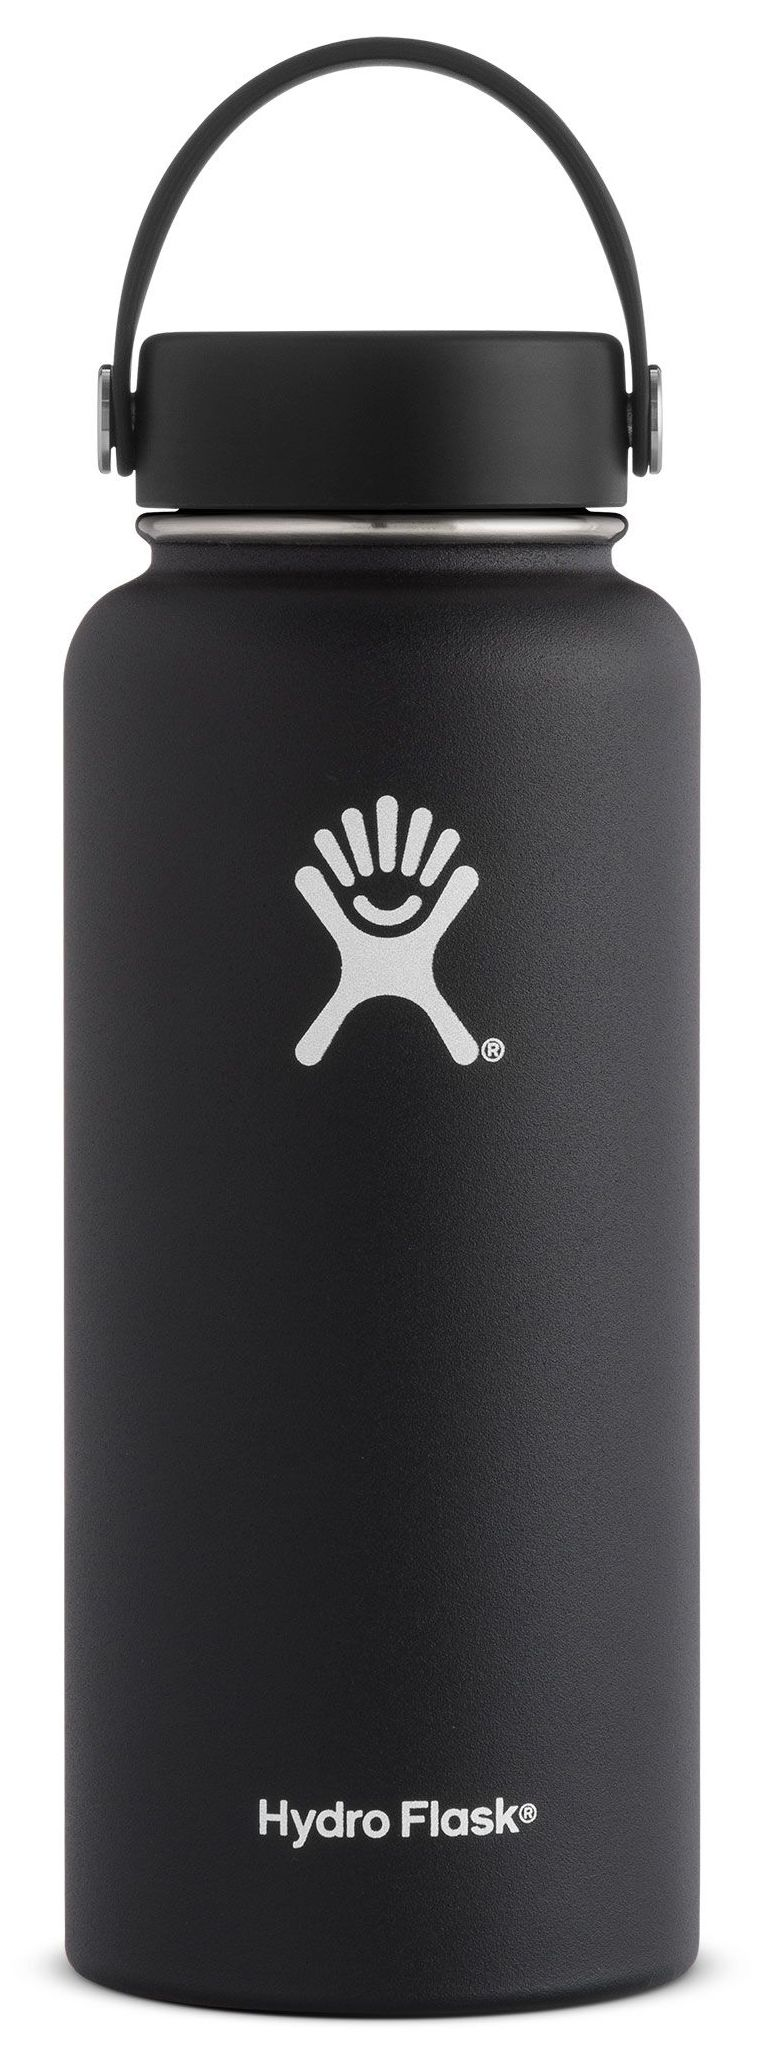 Hydro Flask 32 oz Wide Mouth - Vacuum flask